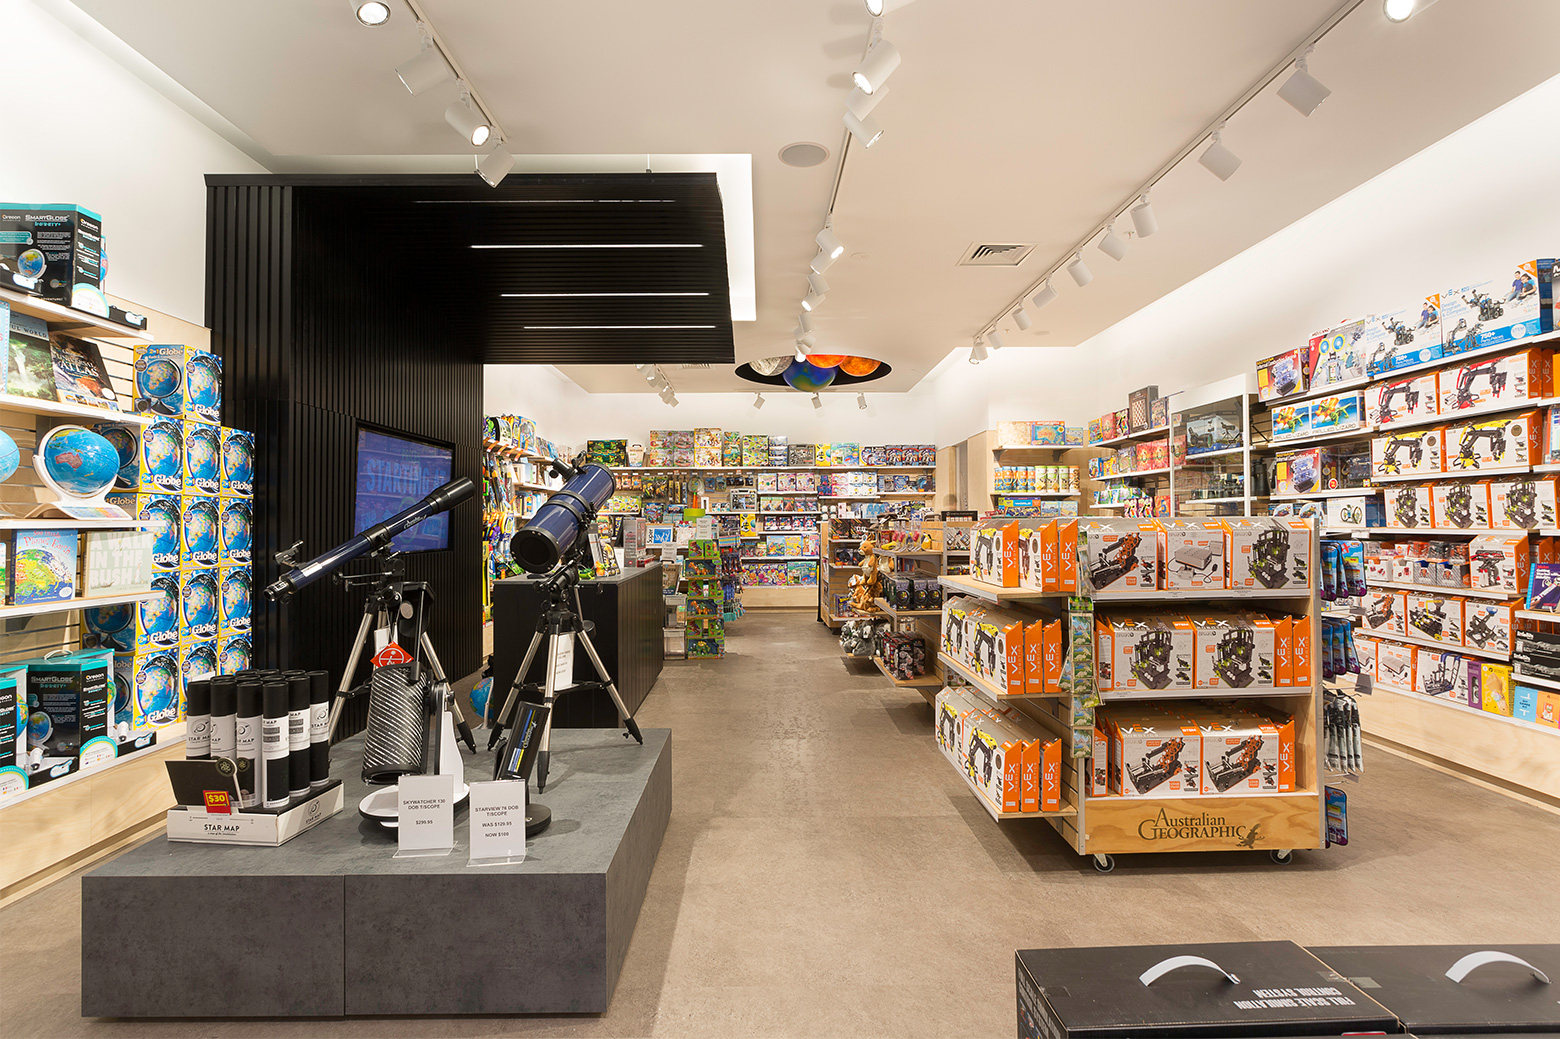 Retail store lighting led lighting for retail stores lighting australian geographic retail store lighting design and supply arubaitofo Choice Image